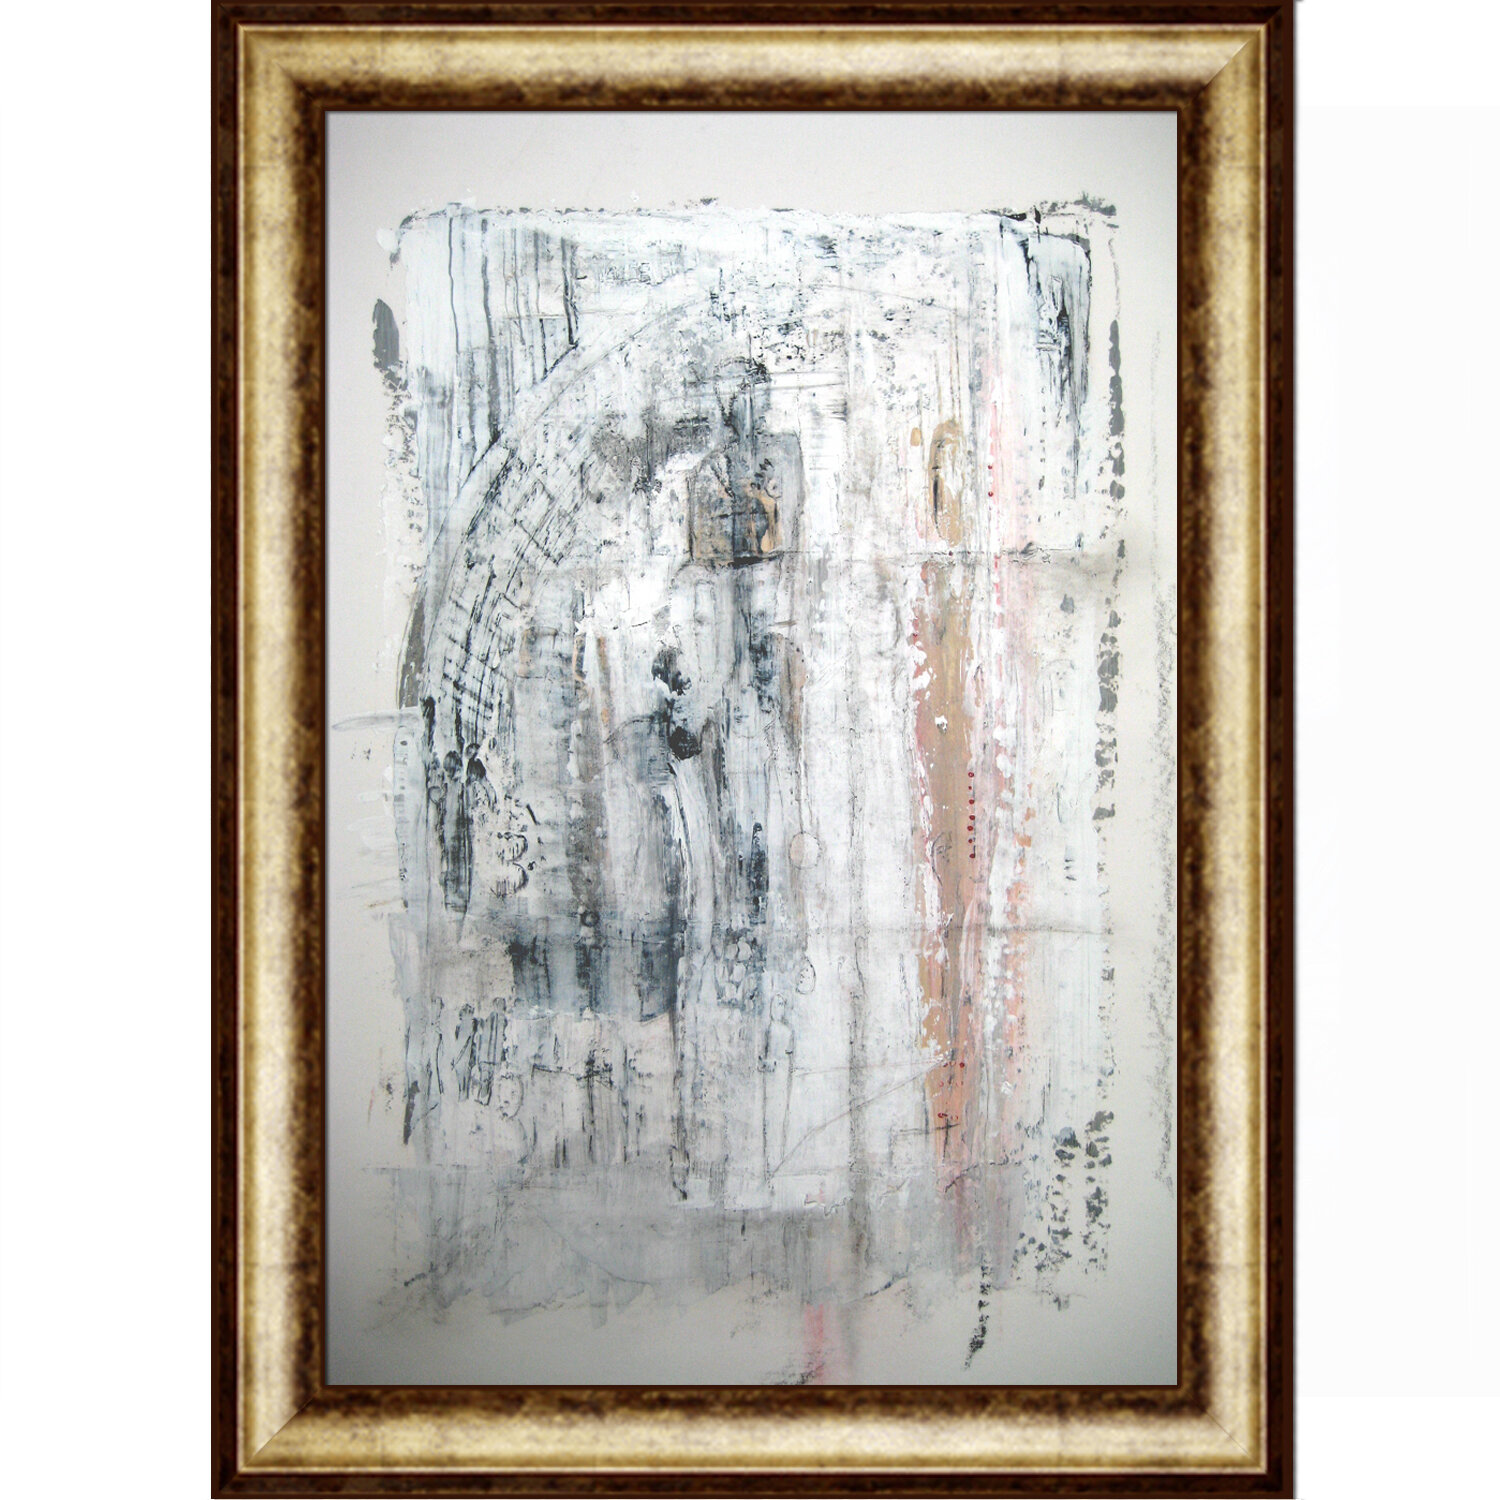 Tori Home Artisbe State Of Oblivion By Elwira Pioro Framed Painting On Canvas Wayfair